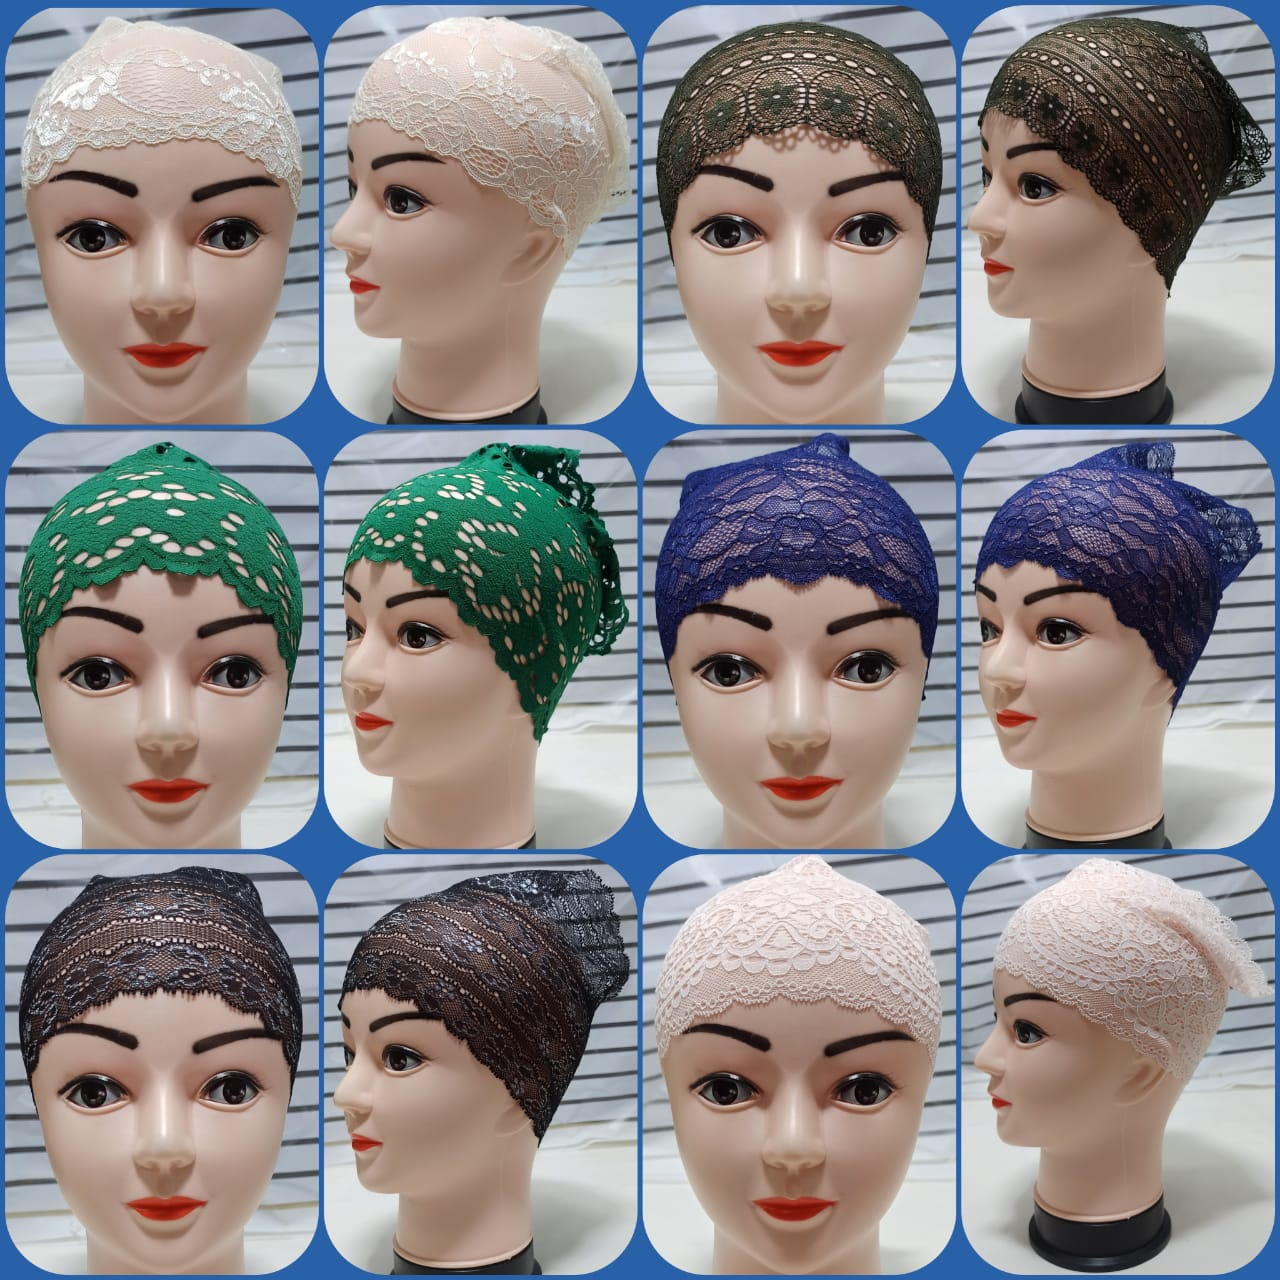 Pack of 6 Lace bands net cap for girls  HIjab caps  hijab caps for girls stylish  Soft & Comfortable Fabric-Multicolors-Adjustable Size